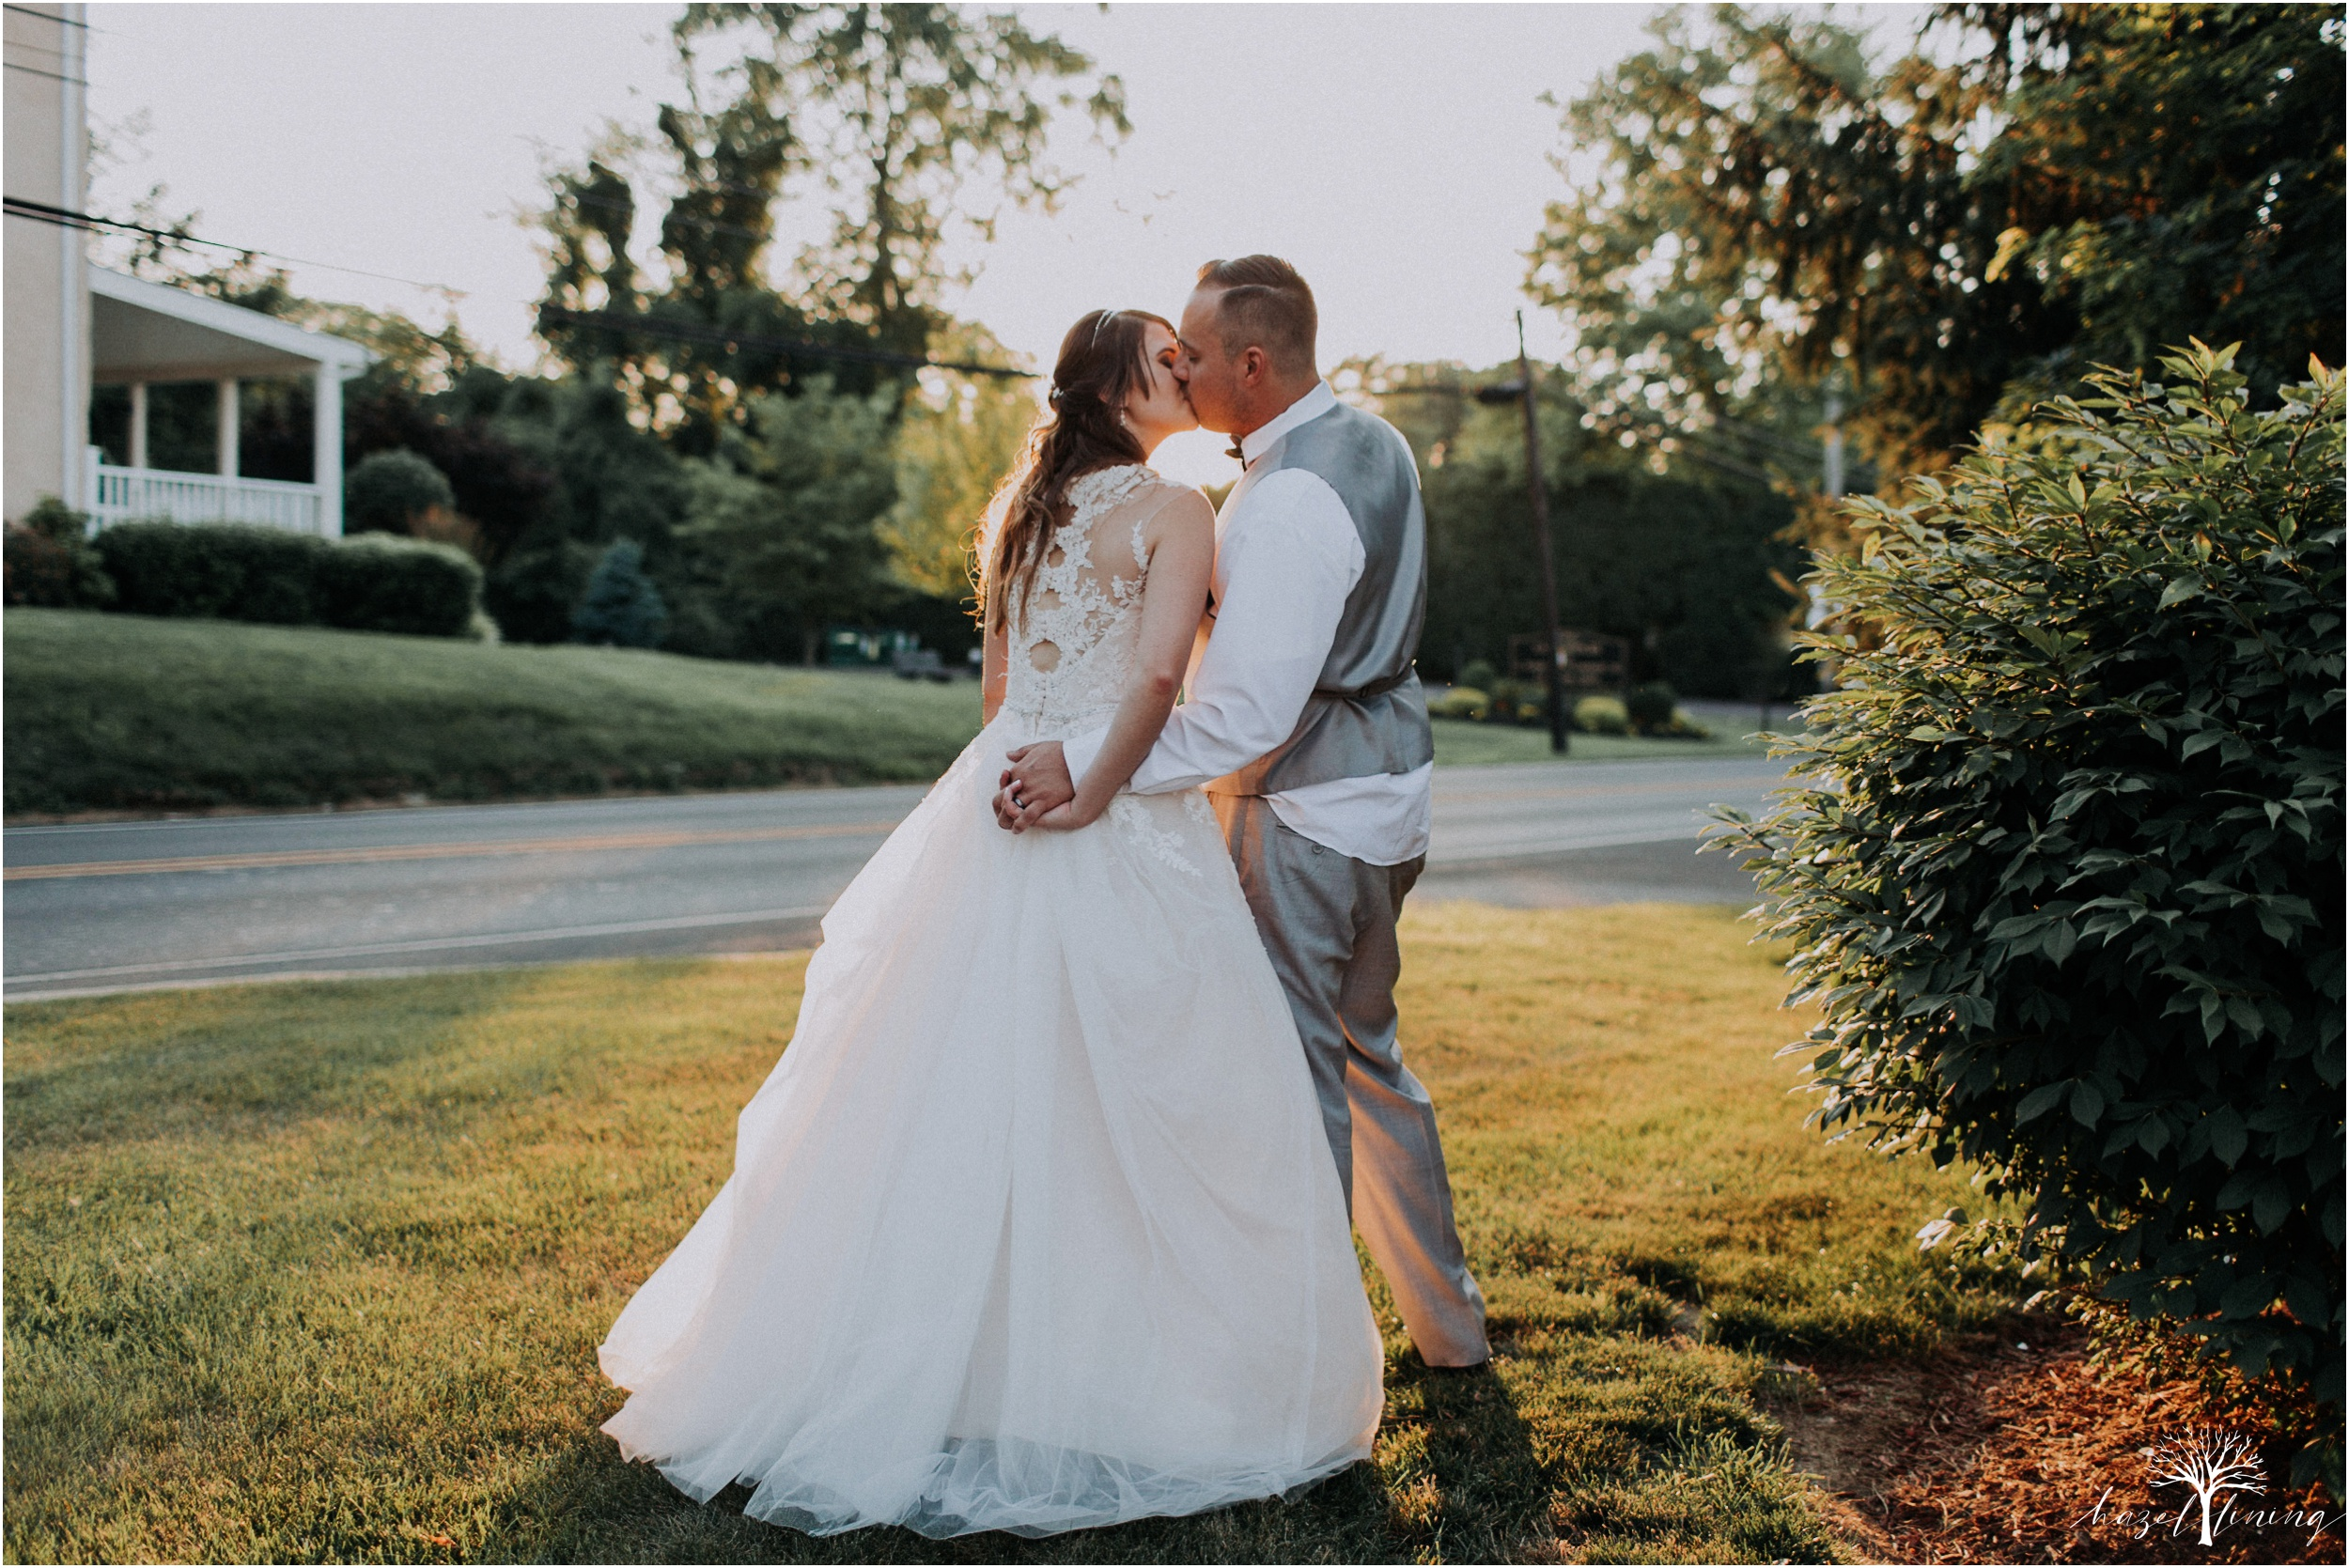 cassie-depinto-tyler-bodder-playwicki-farm-buck-hotel-featserville-trevose-pennsylvania-summer-outdoor-wedding-hazel-lining-travel-wedding-elopement-photography_0326.jpg